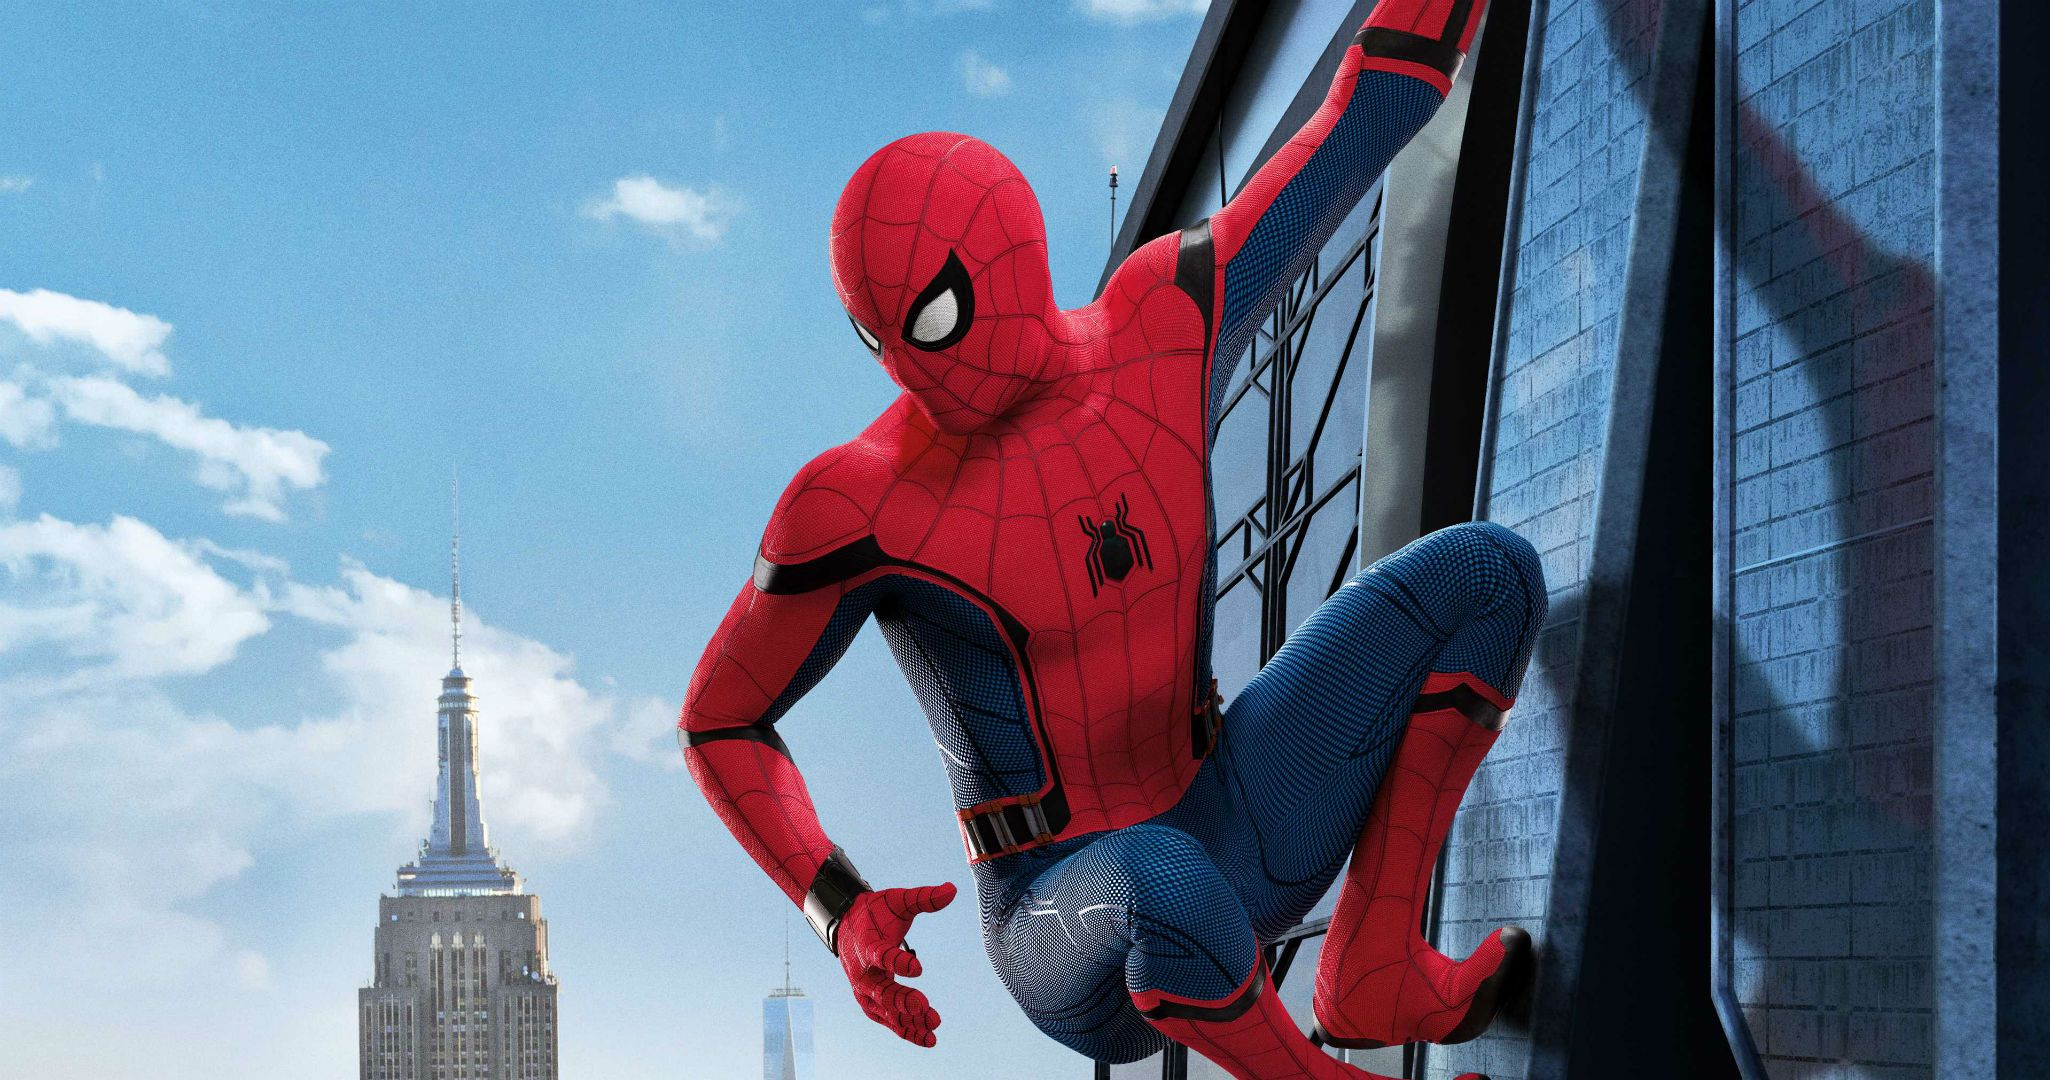 """Avengers: Endgame directors say Spider-Man leaving MCU is a """"tragic mistake"""""""